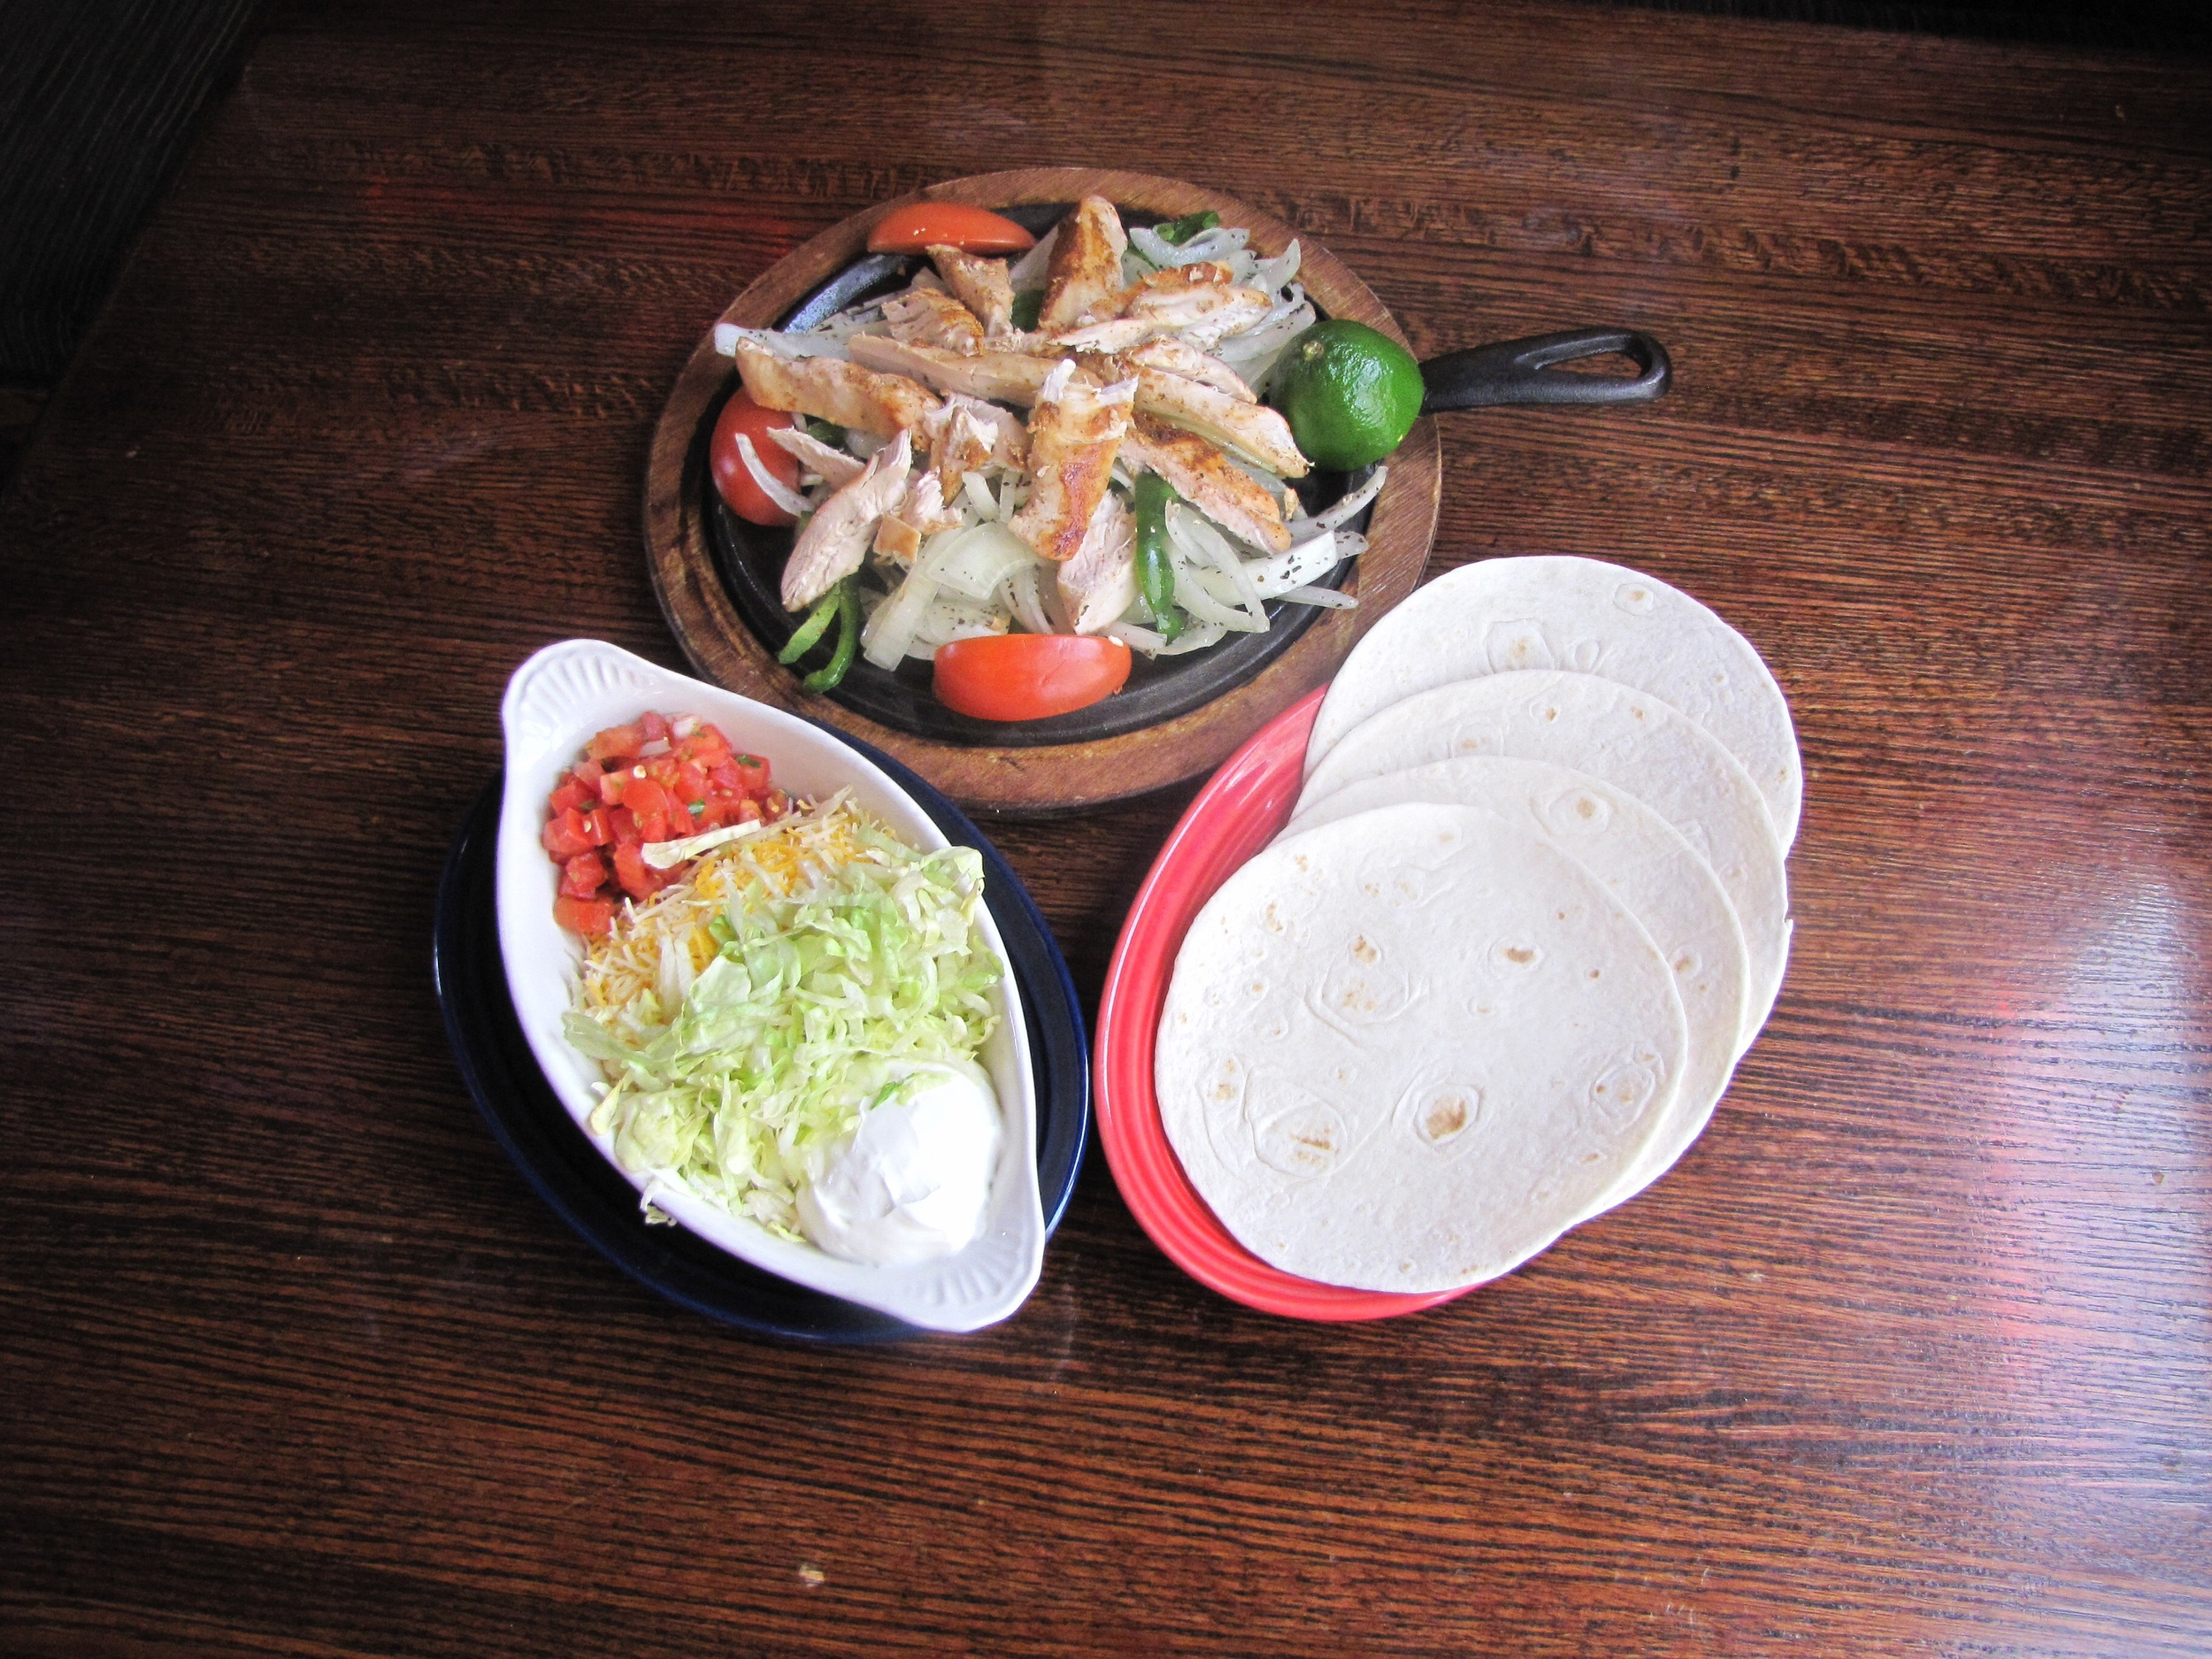 Friday is sizzling fajita platter night:   Free sizzling fajita platter with any regular priced pitcher of beer or margaritas   For drinks:  After class - 3-6 p.m.    $1.50 domestic pints    $2.00 rails    $2.50 margarita pints    9 p.m. - close    $3 tier 1 pints   $3 rail drinks    $4 tier 2 pints